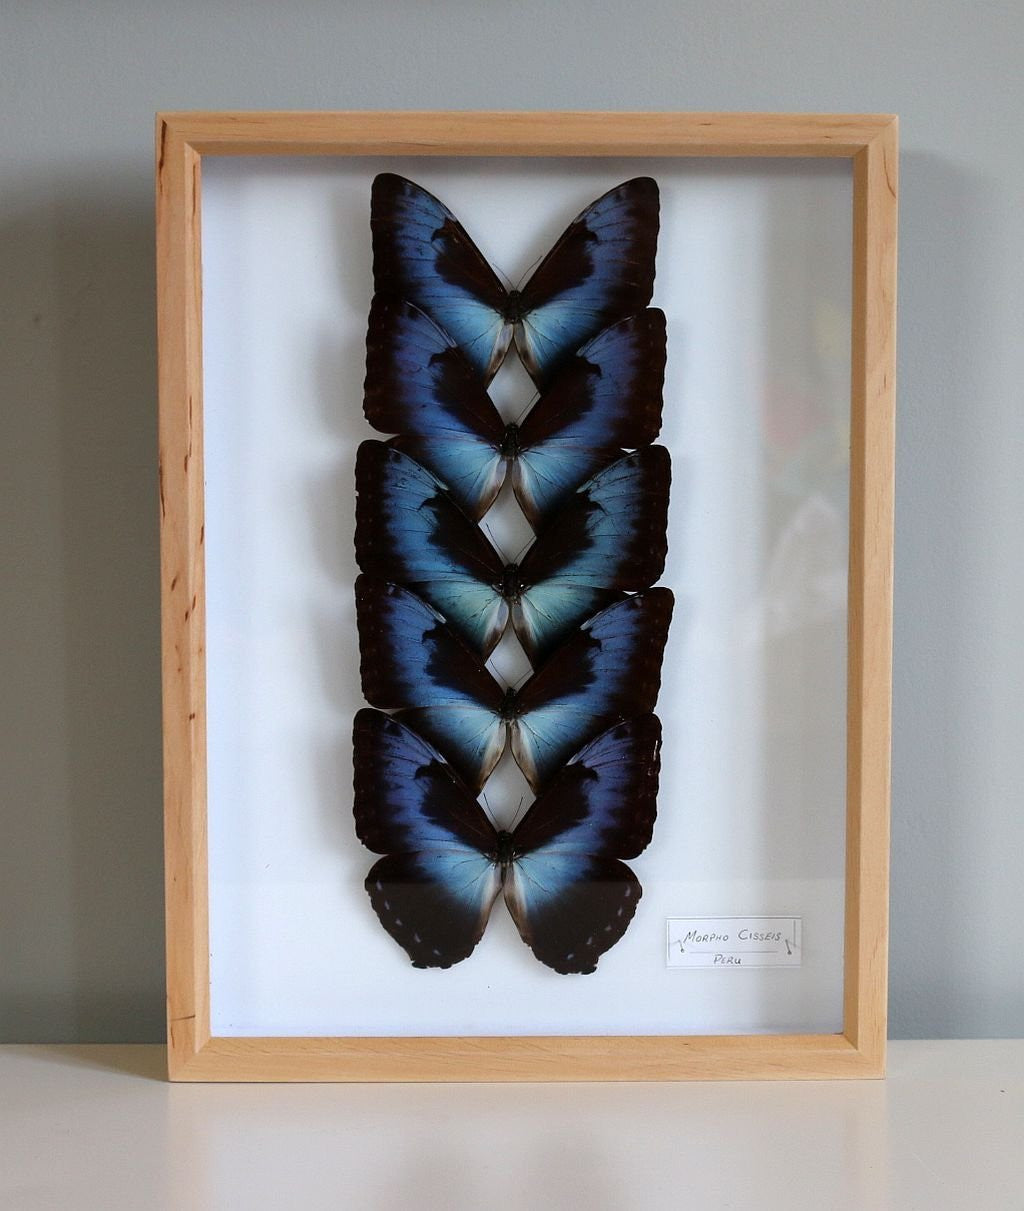 How To Display Framed Butterflies and Moths At Home